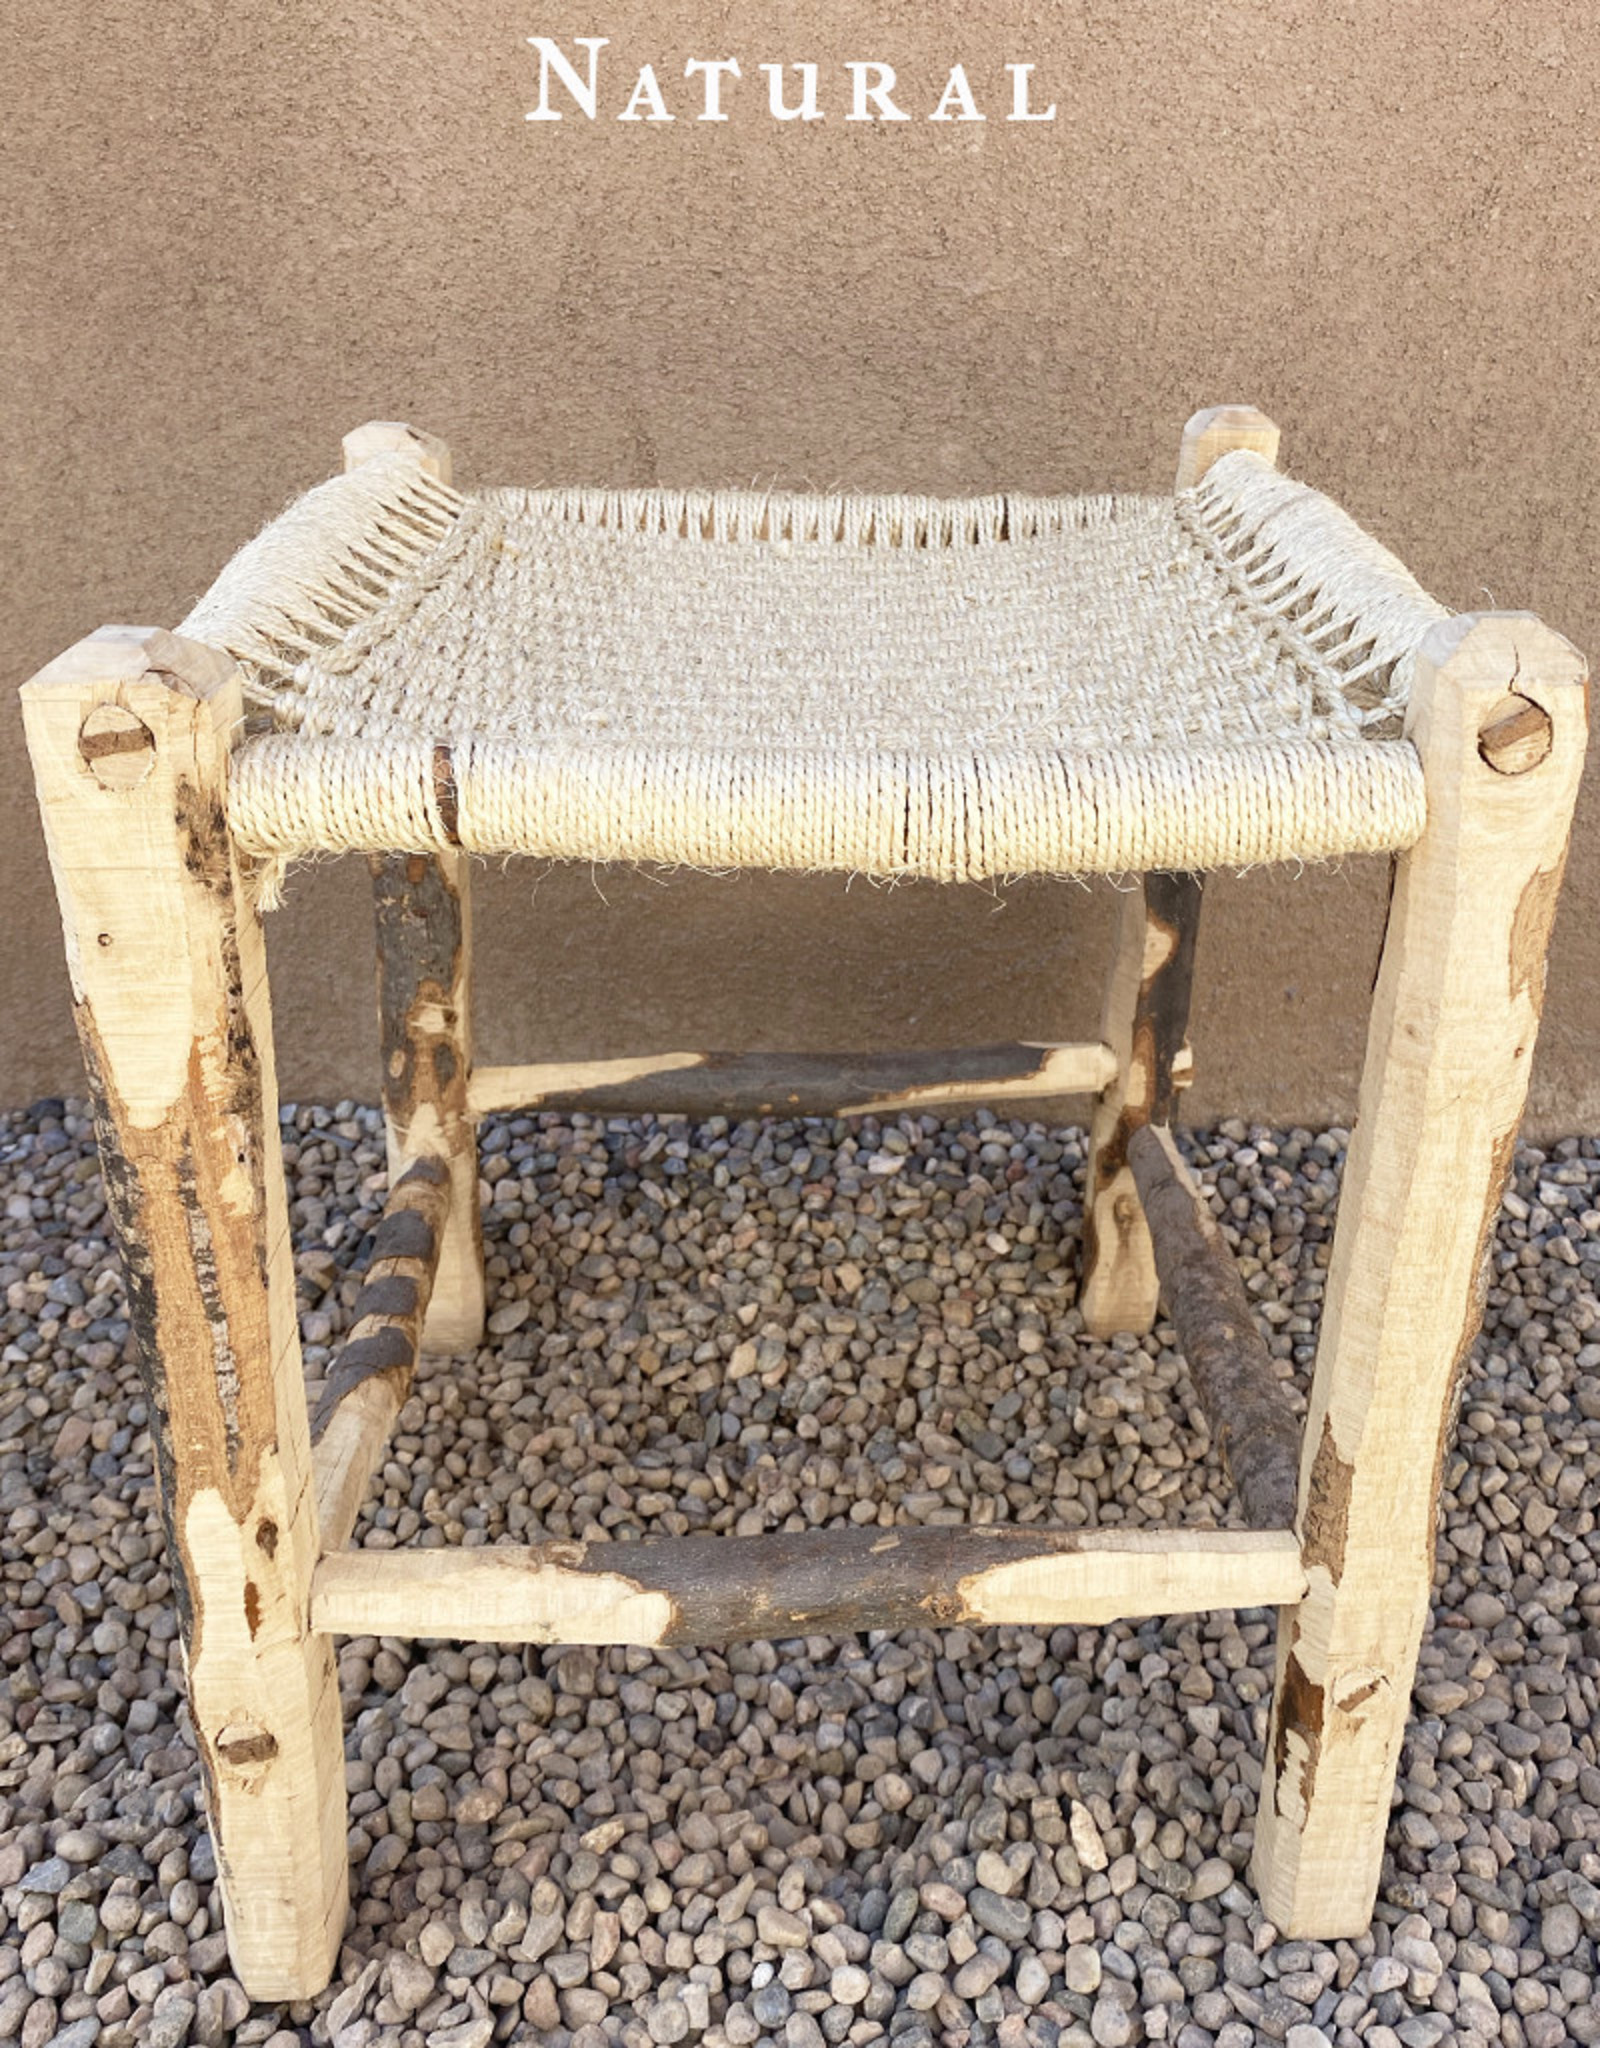 Artizana Mechy Handwoven Recycled Olive Wood Stools Natural